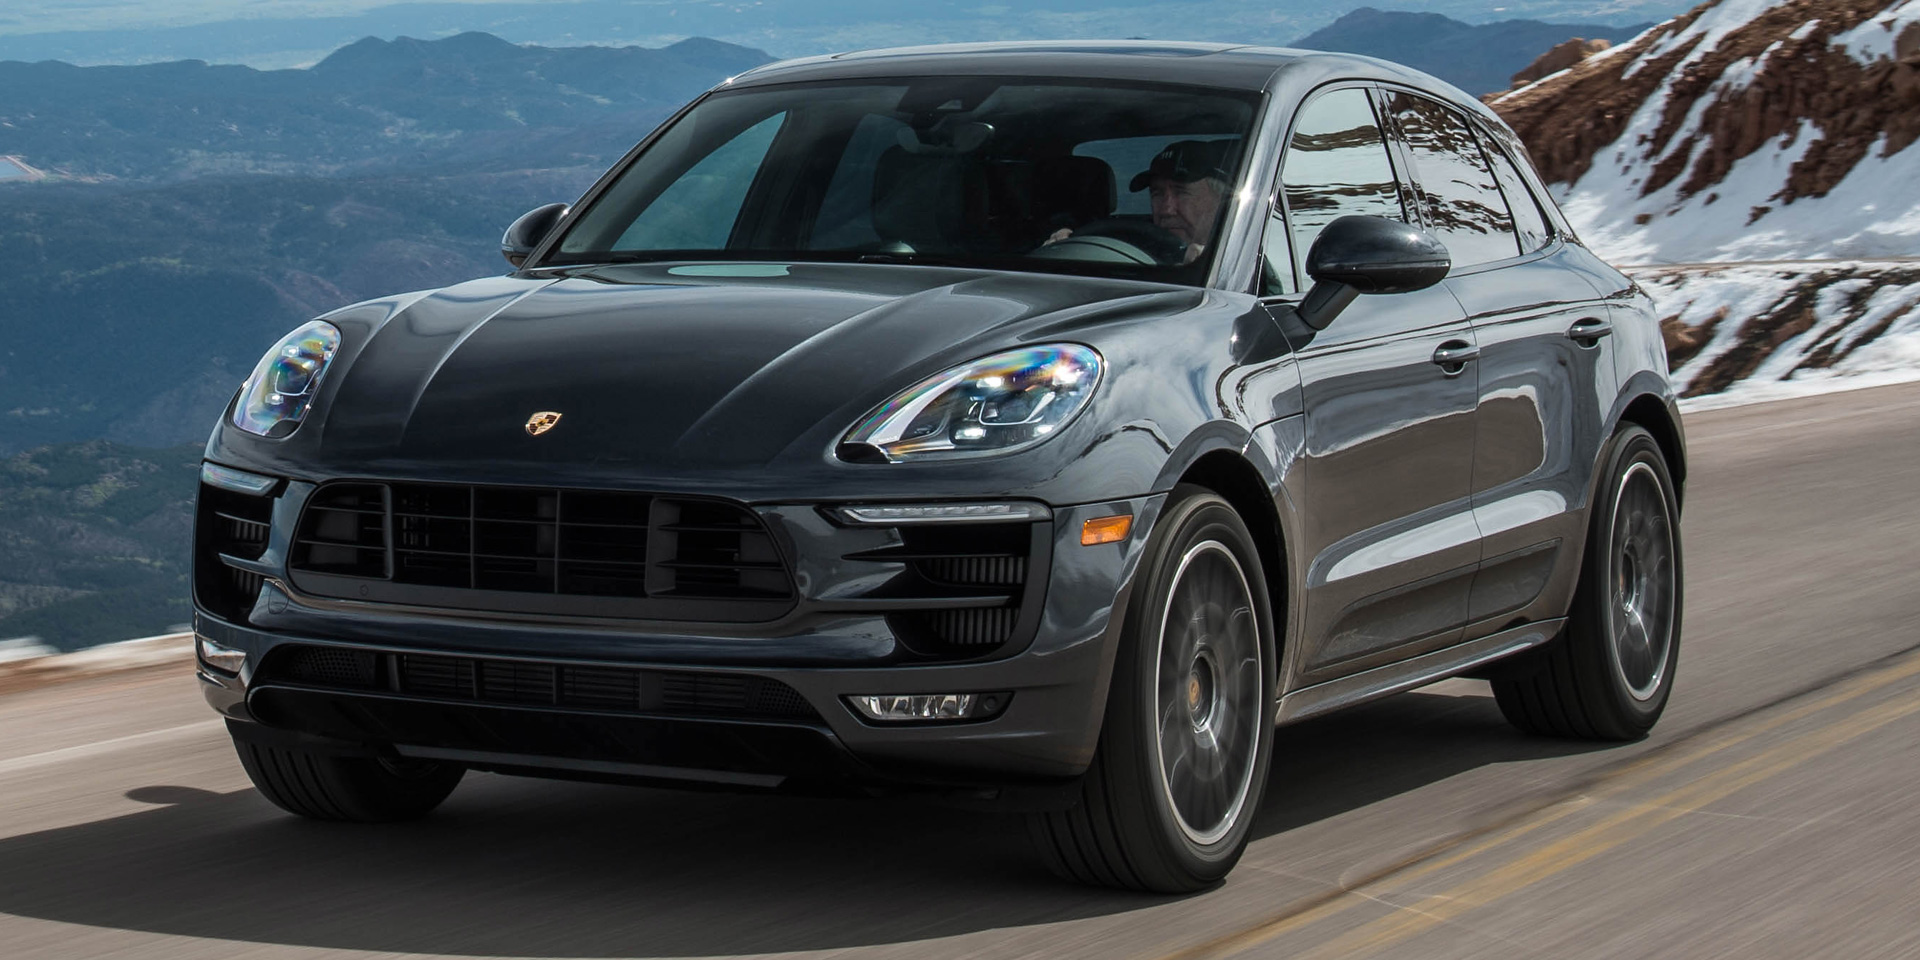 2018 Porsche Macan Vehicles On Display Chicago